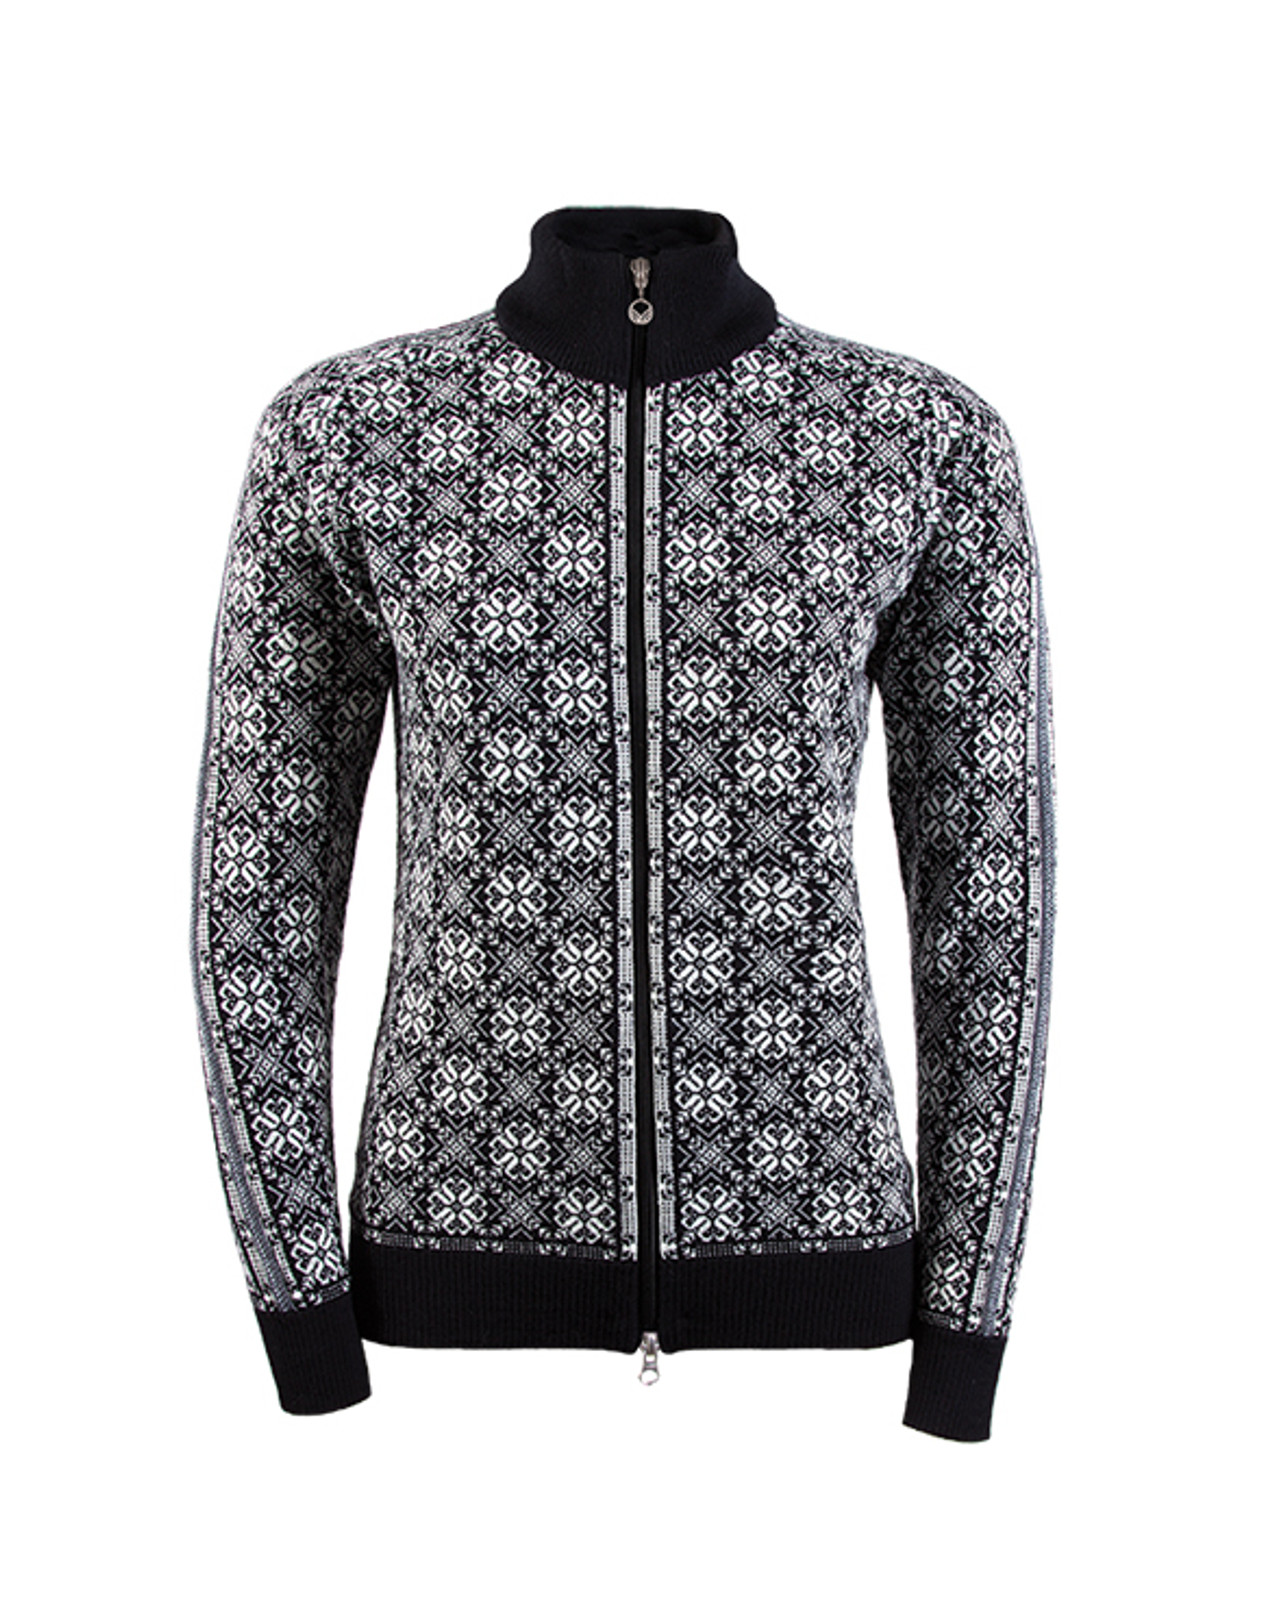 Dale of Norway Frida cardigan, ladies, in Black/Off White/Schiefer/Grey Mel, 82931-F, on sale at The Nordic Shop.